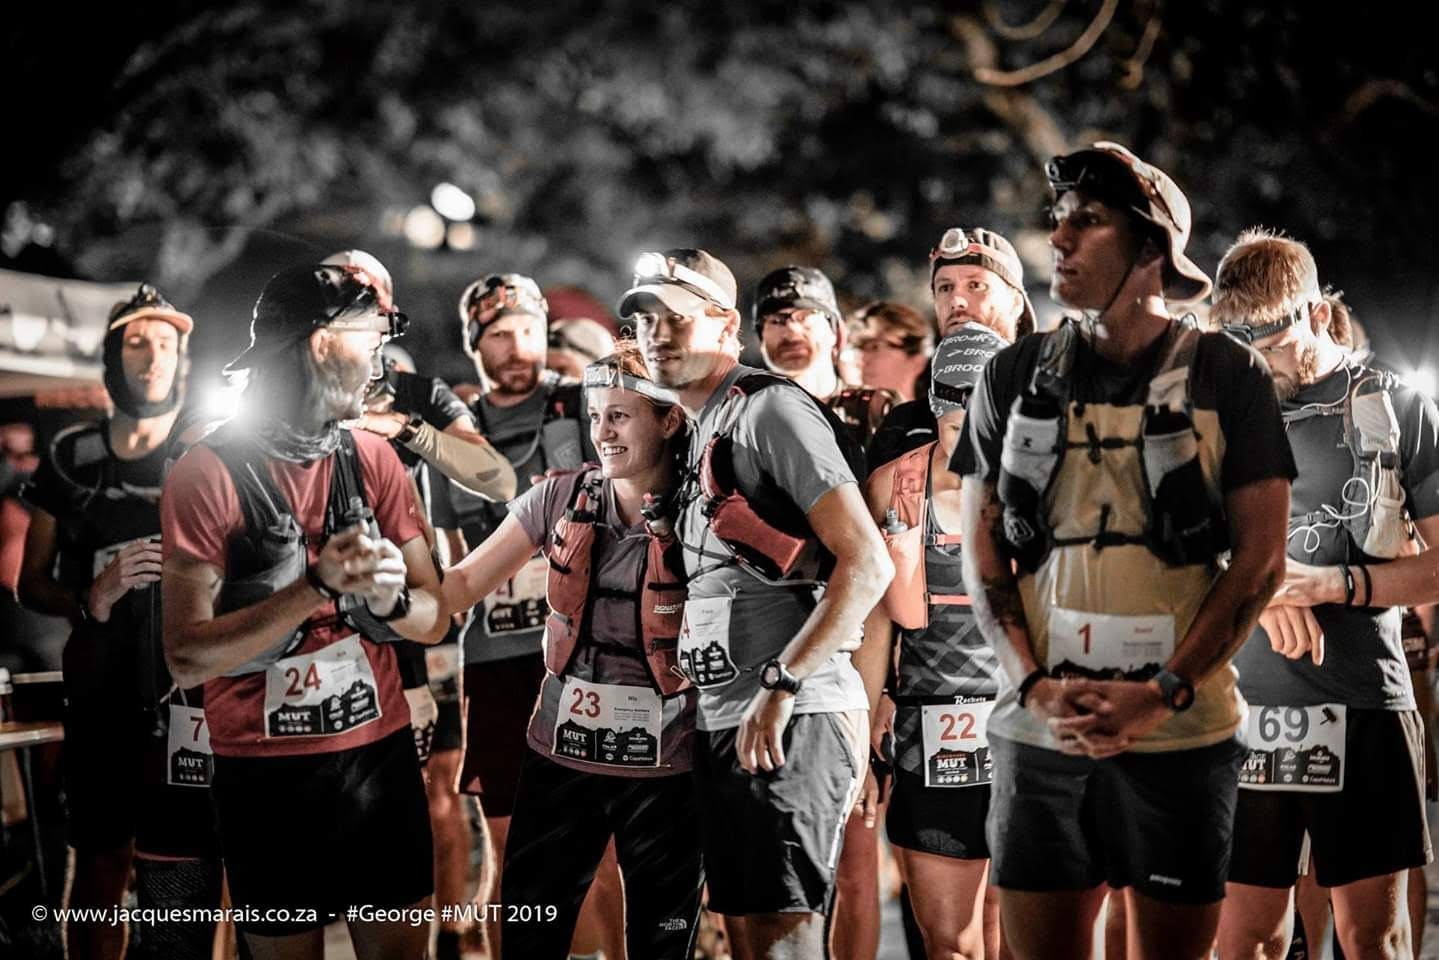 Running in the Mountains - ROELOF MOSTERT'S ACCOUNT OF THE GEORGE MOUNTAIN ULTRA, 2019